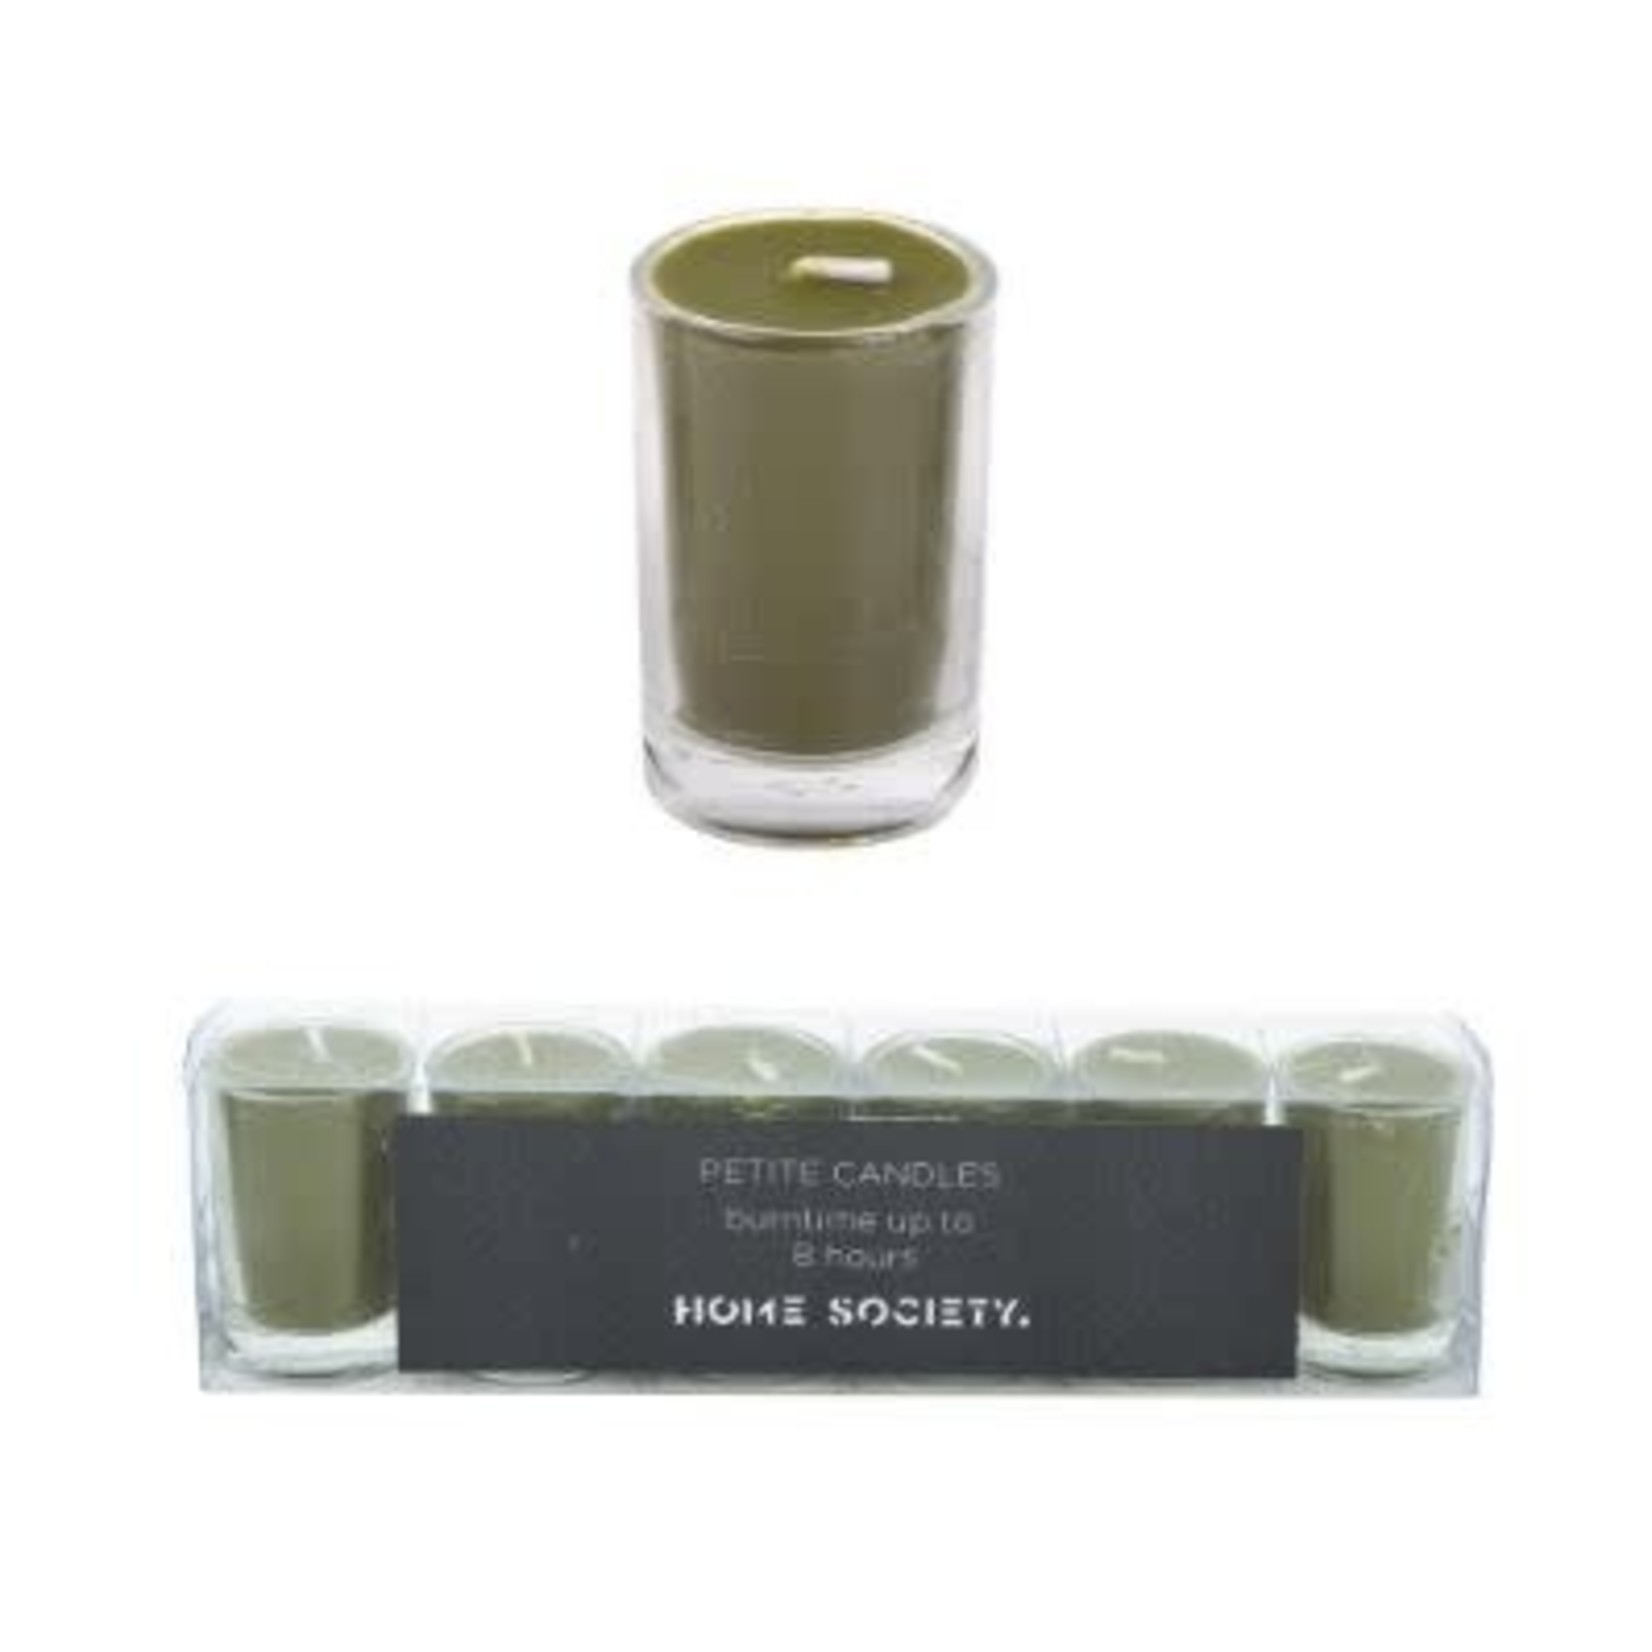 Home Society Votive Candle Green